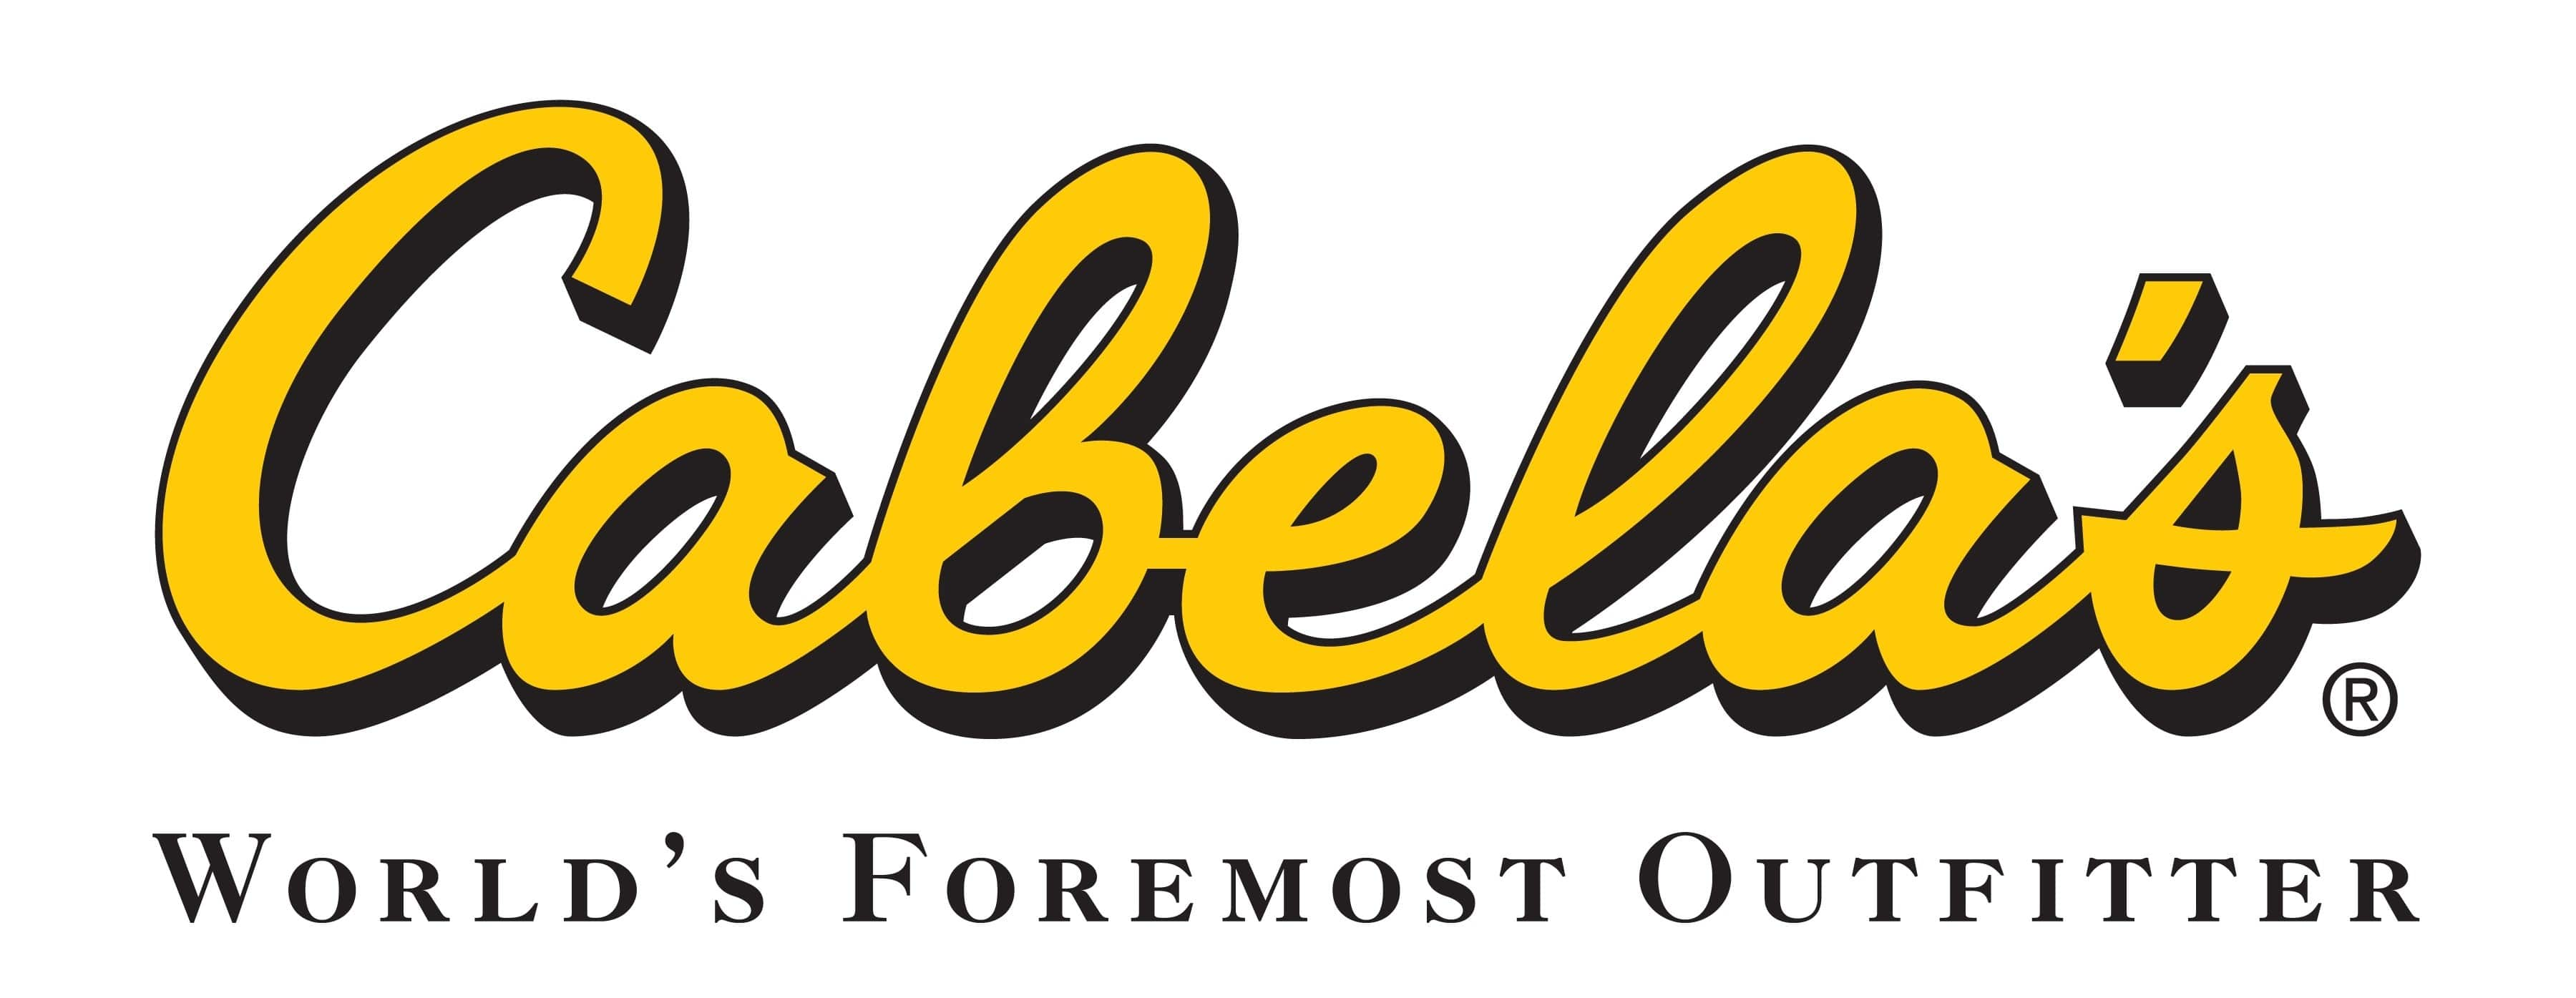 Cabelas Branded Products 20% off plus free shipping on $49 min purchase